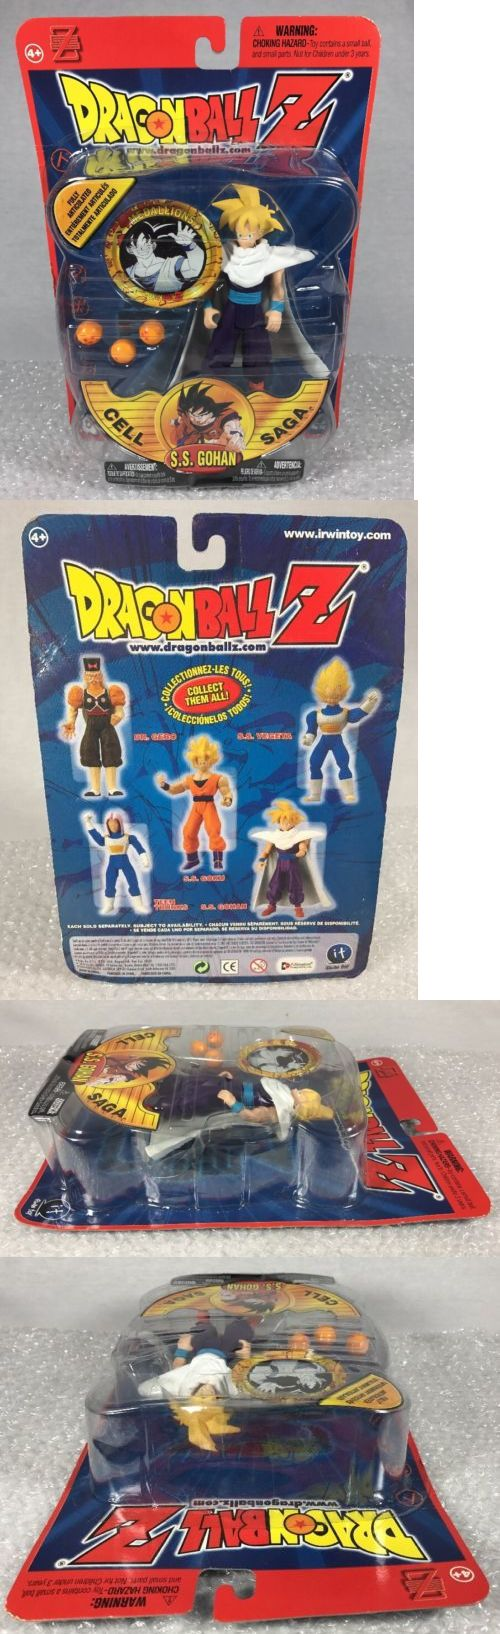 DragonBall Z 7117: Dragon Ball Z Irwin Toys S.S. Gohan Cell Saga Dbz Sealed Action Figure 2001 -> BUY IT NOW ONLY: $34.99 on eBay!